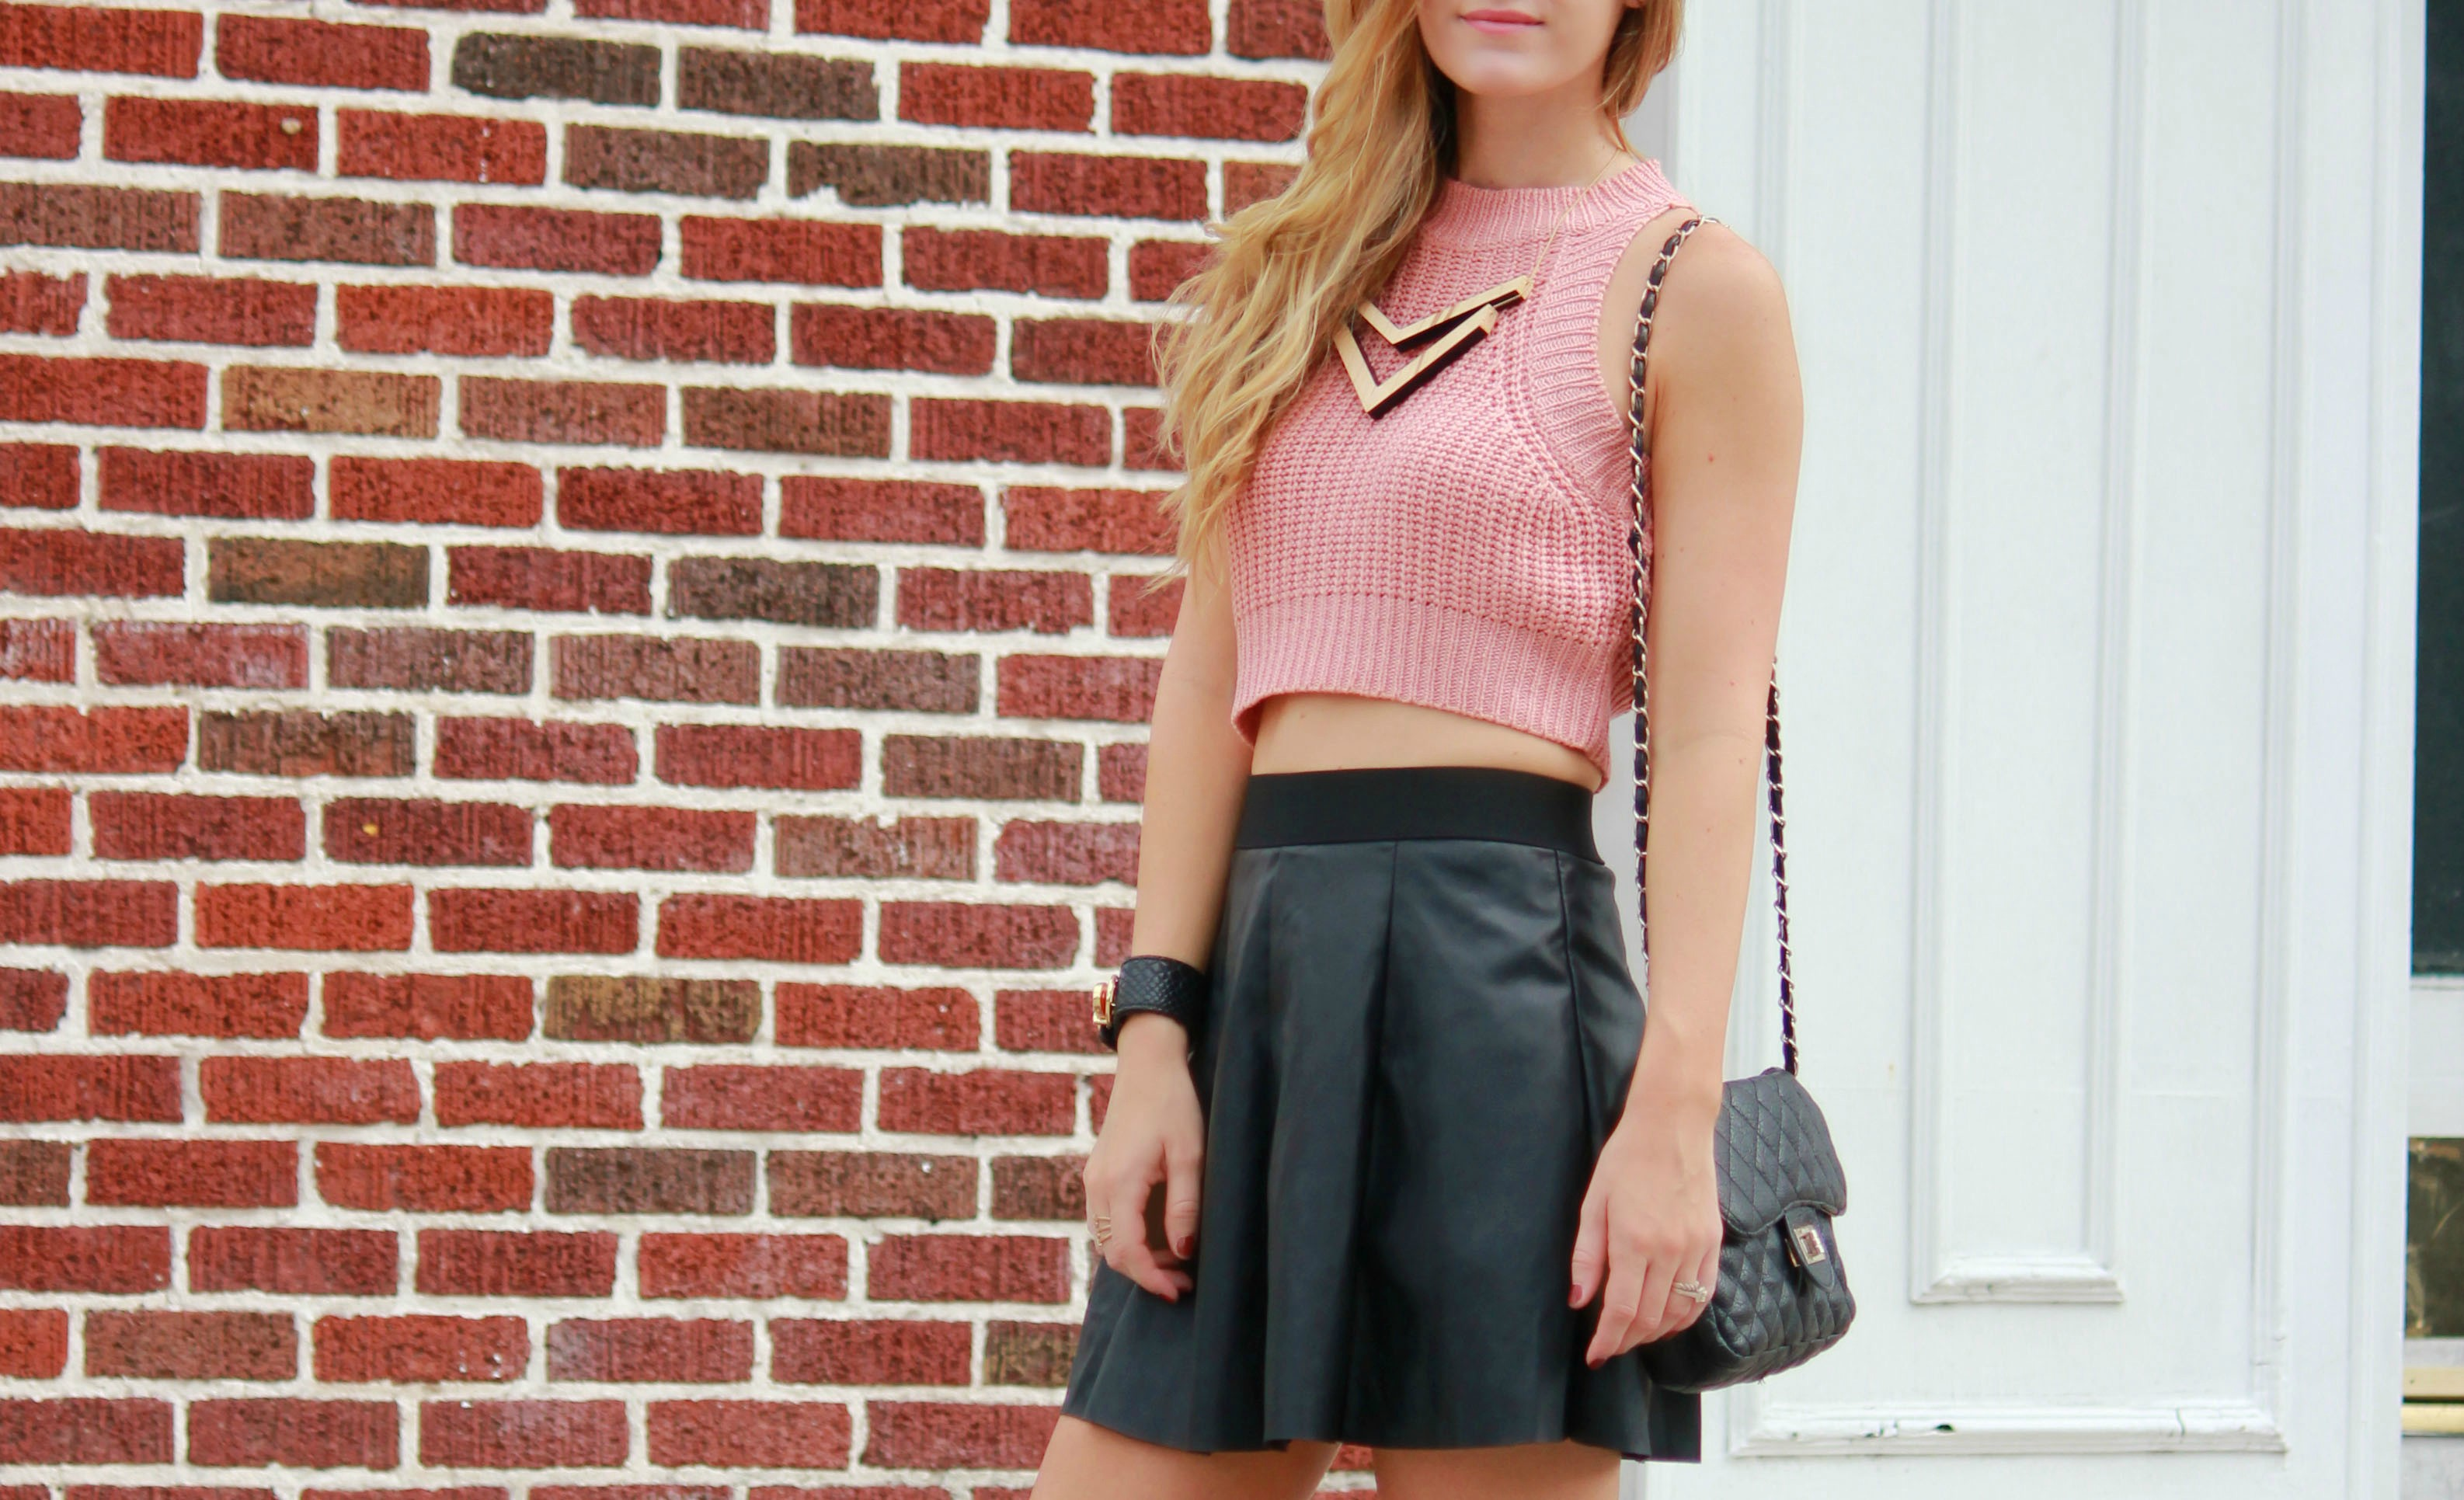 florida, orlando blogger styles knit crop and leather skater skirt from forever 21 with charlotte russe lace up heels for a date night fall outfit